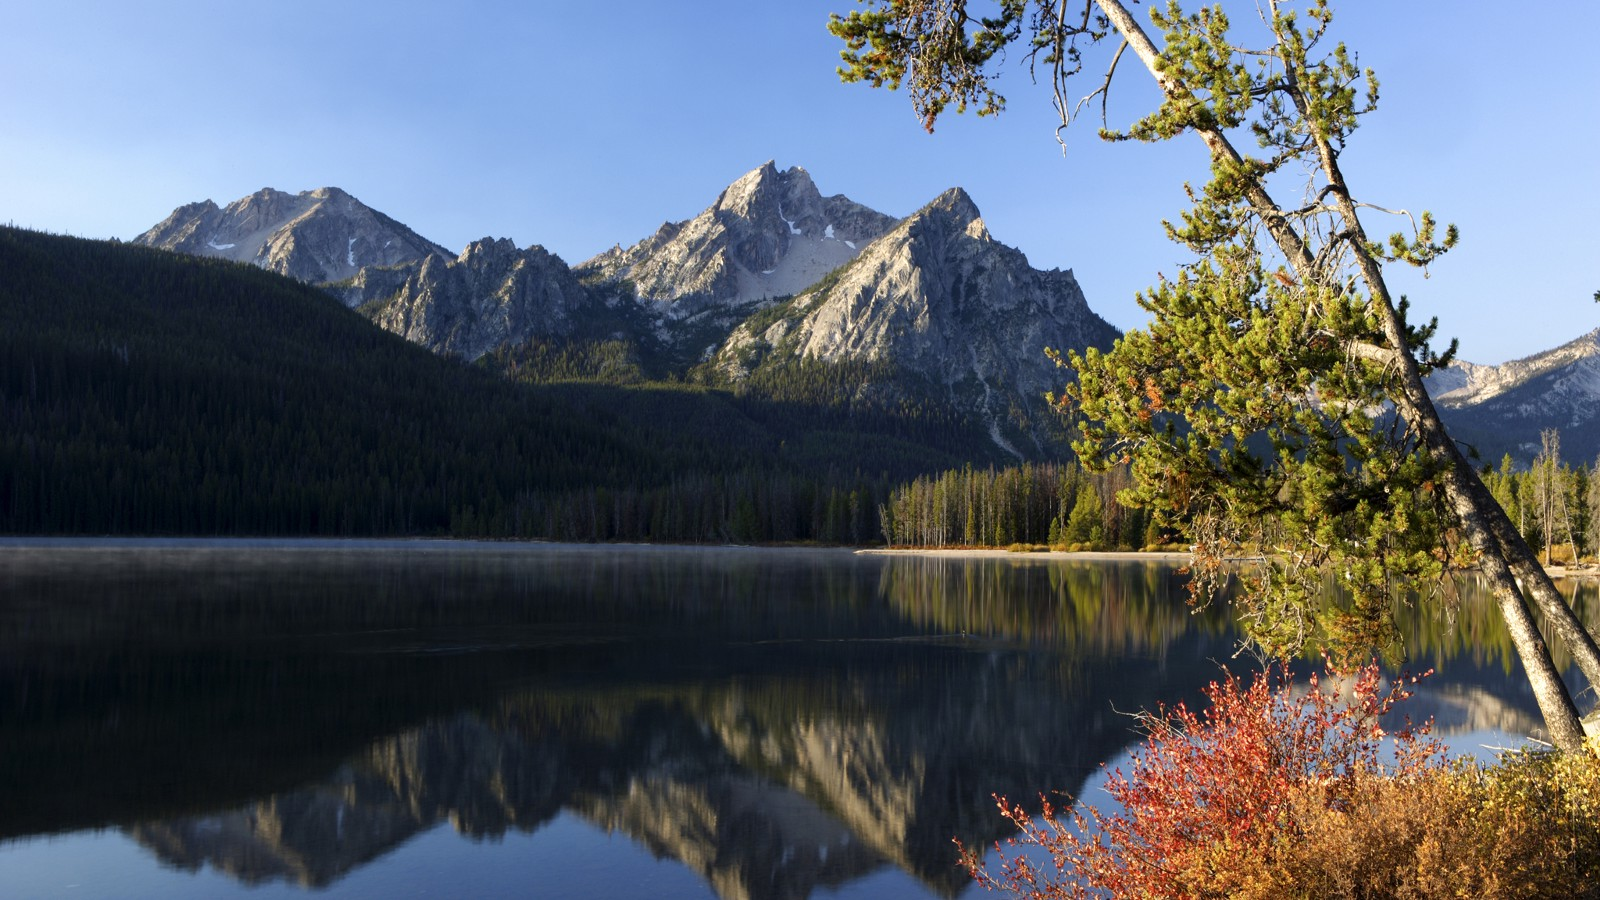 Stanley Lake at Sawtooth Mountains National Recreation Area, Idaho